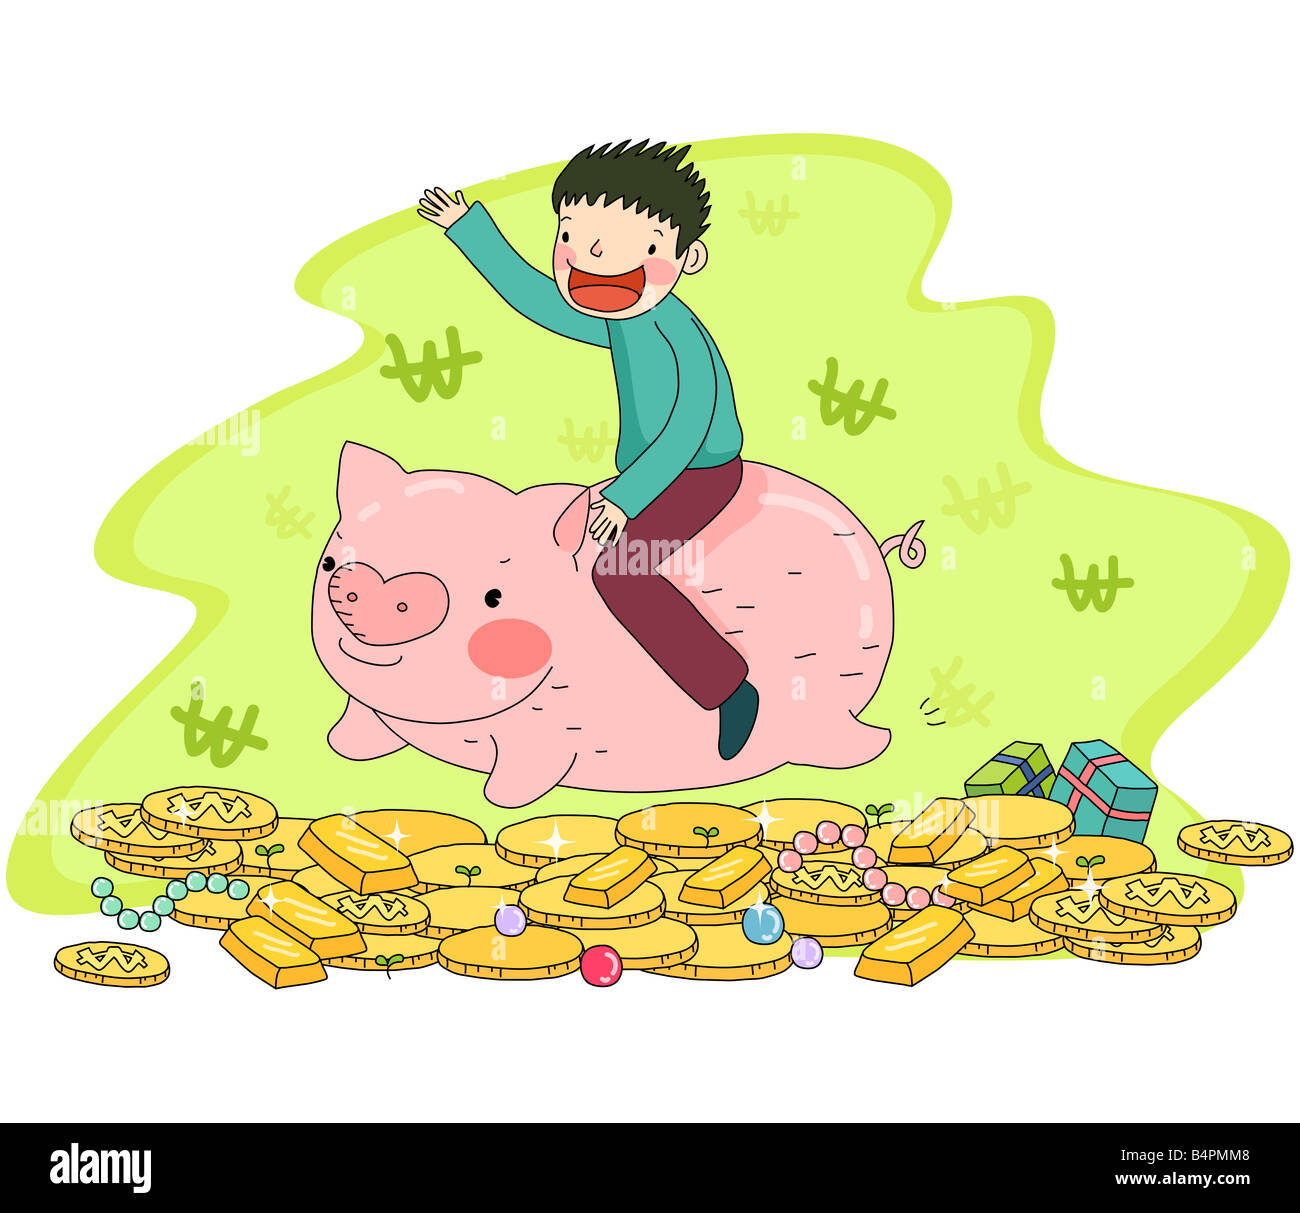 Représentation d'une boy riding piggy bank Photo Stock